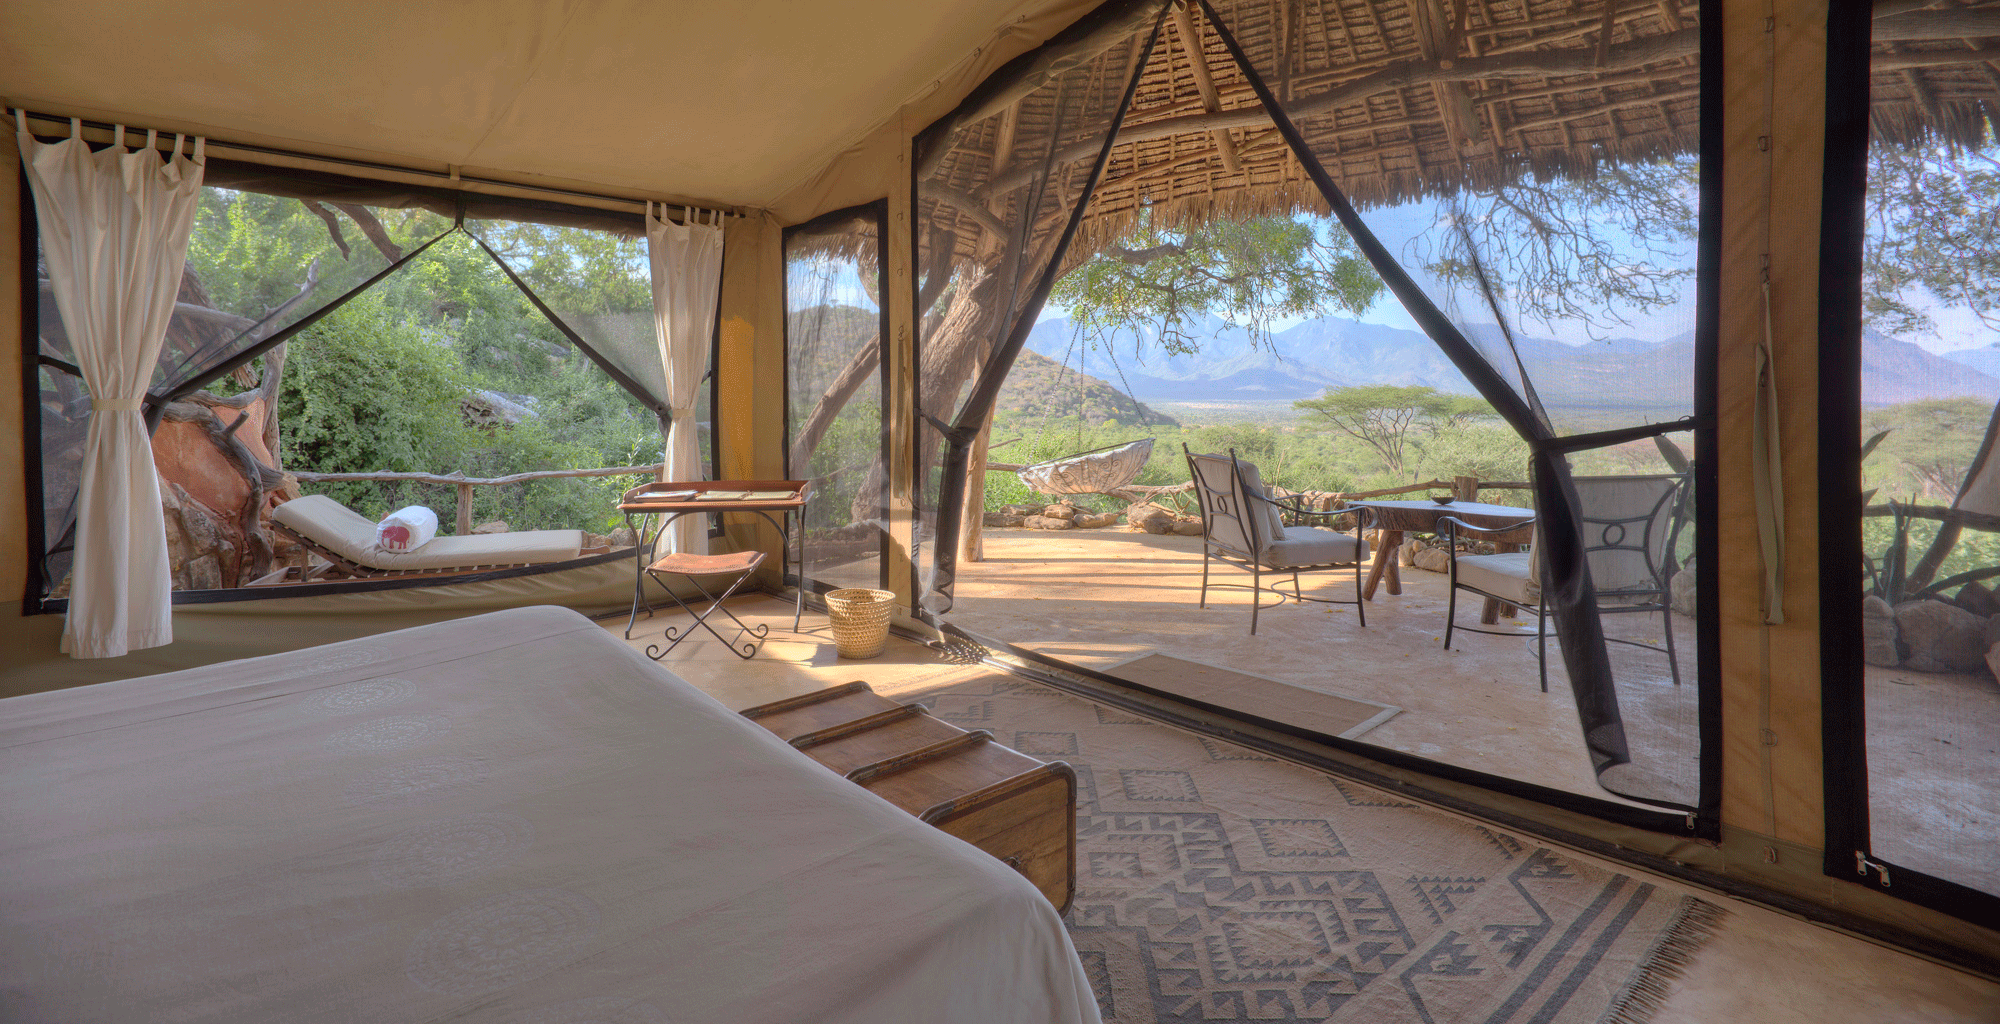 Sarara-Kenya-Northern-Frontier-District-Bedroom-View